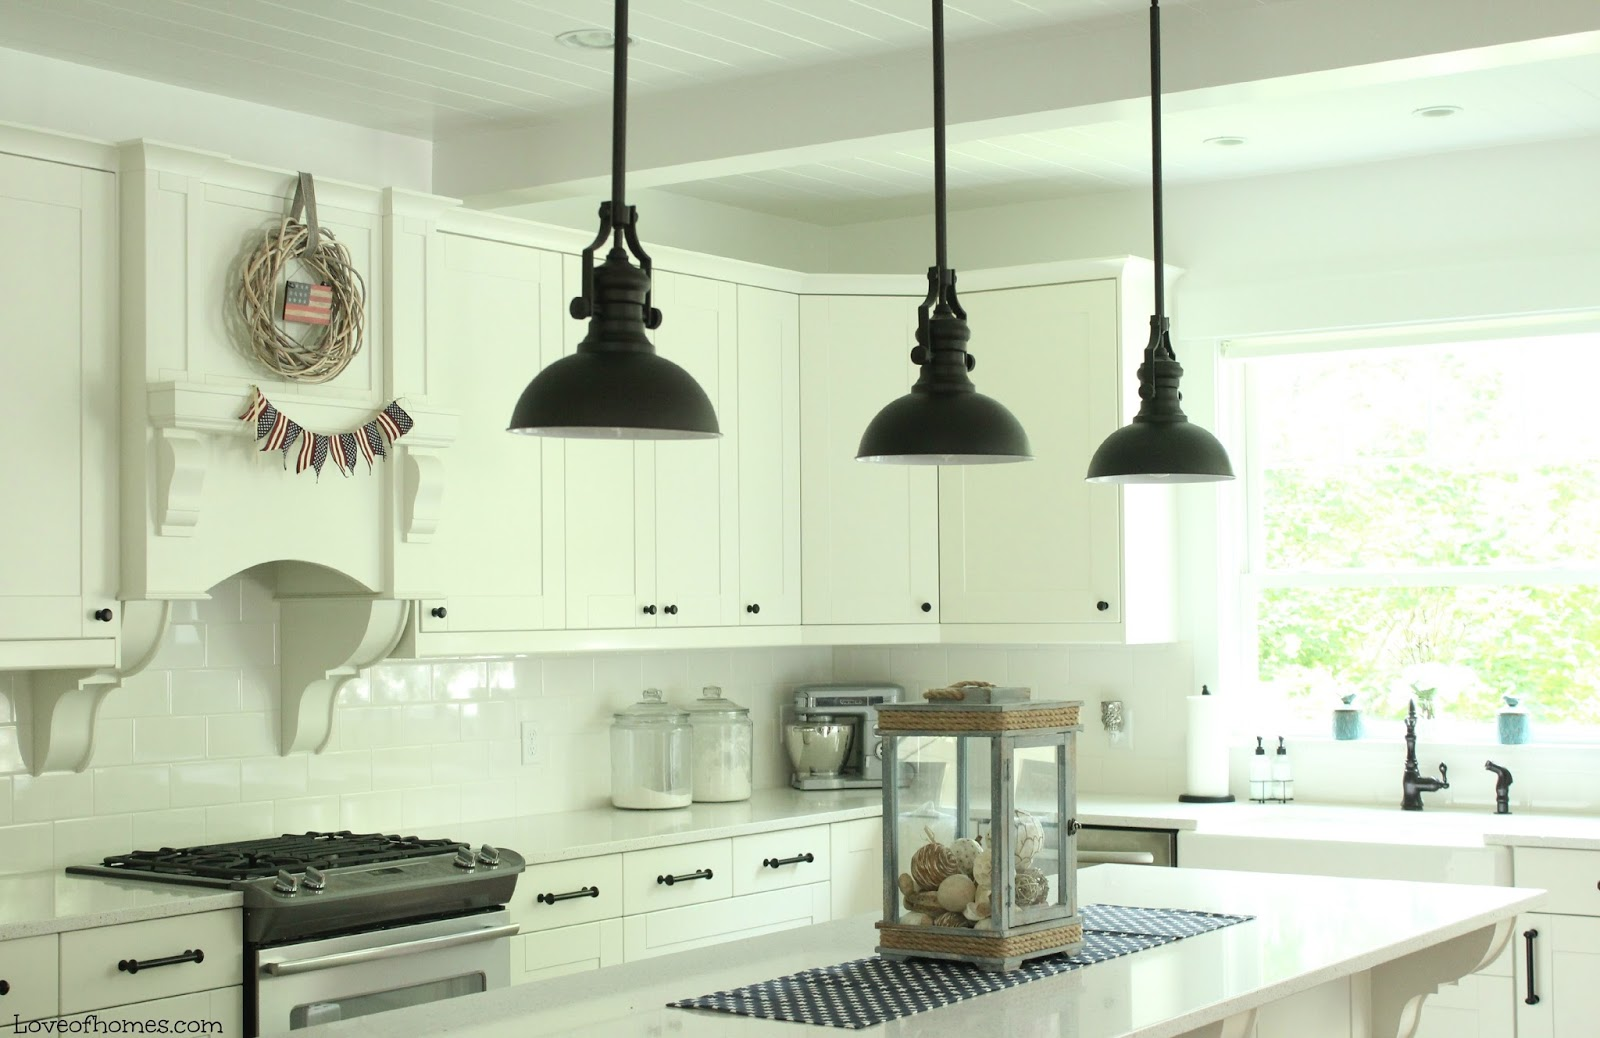 Patriotic kitchen - I Love Having A White Kitchen It Makes All Of The Decor Kind Of Pop